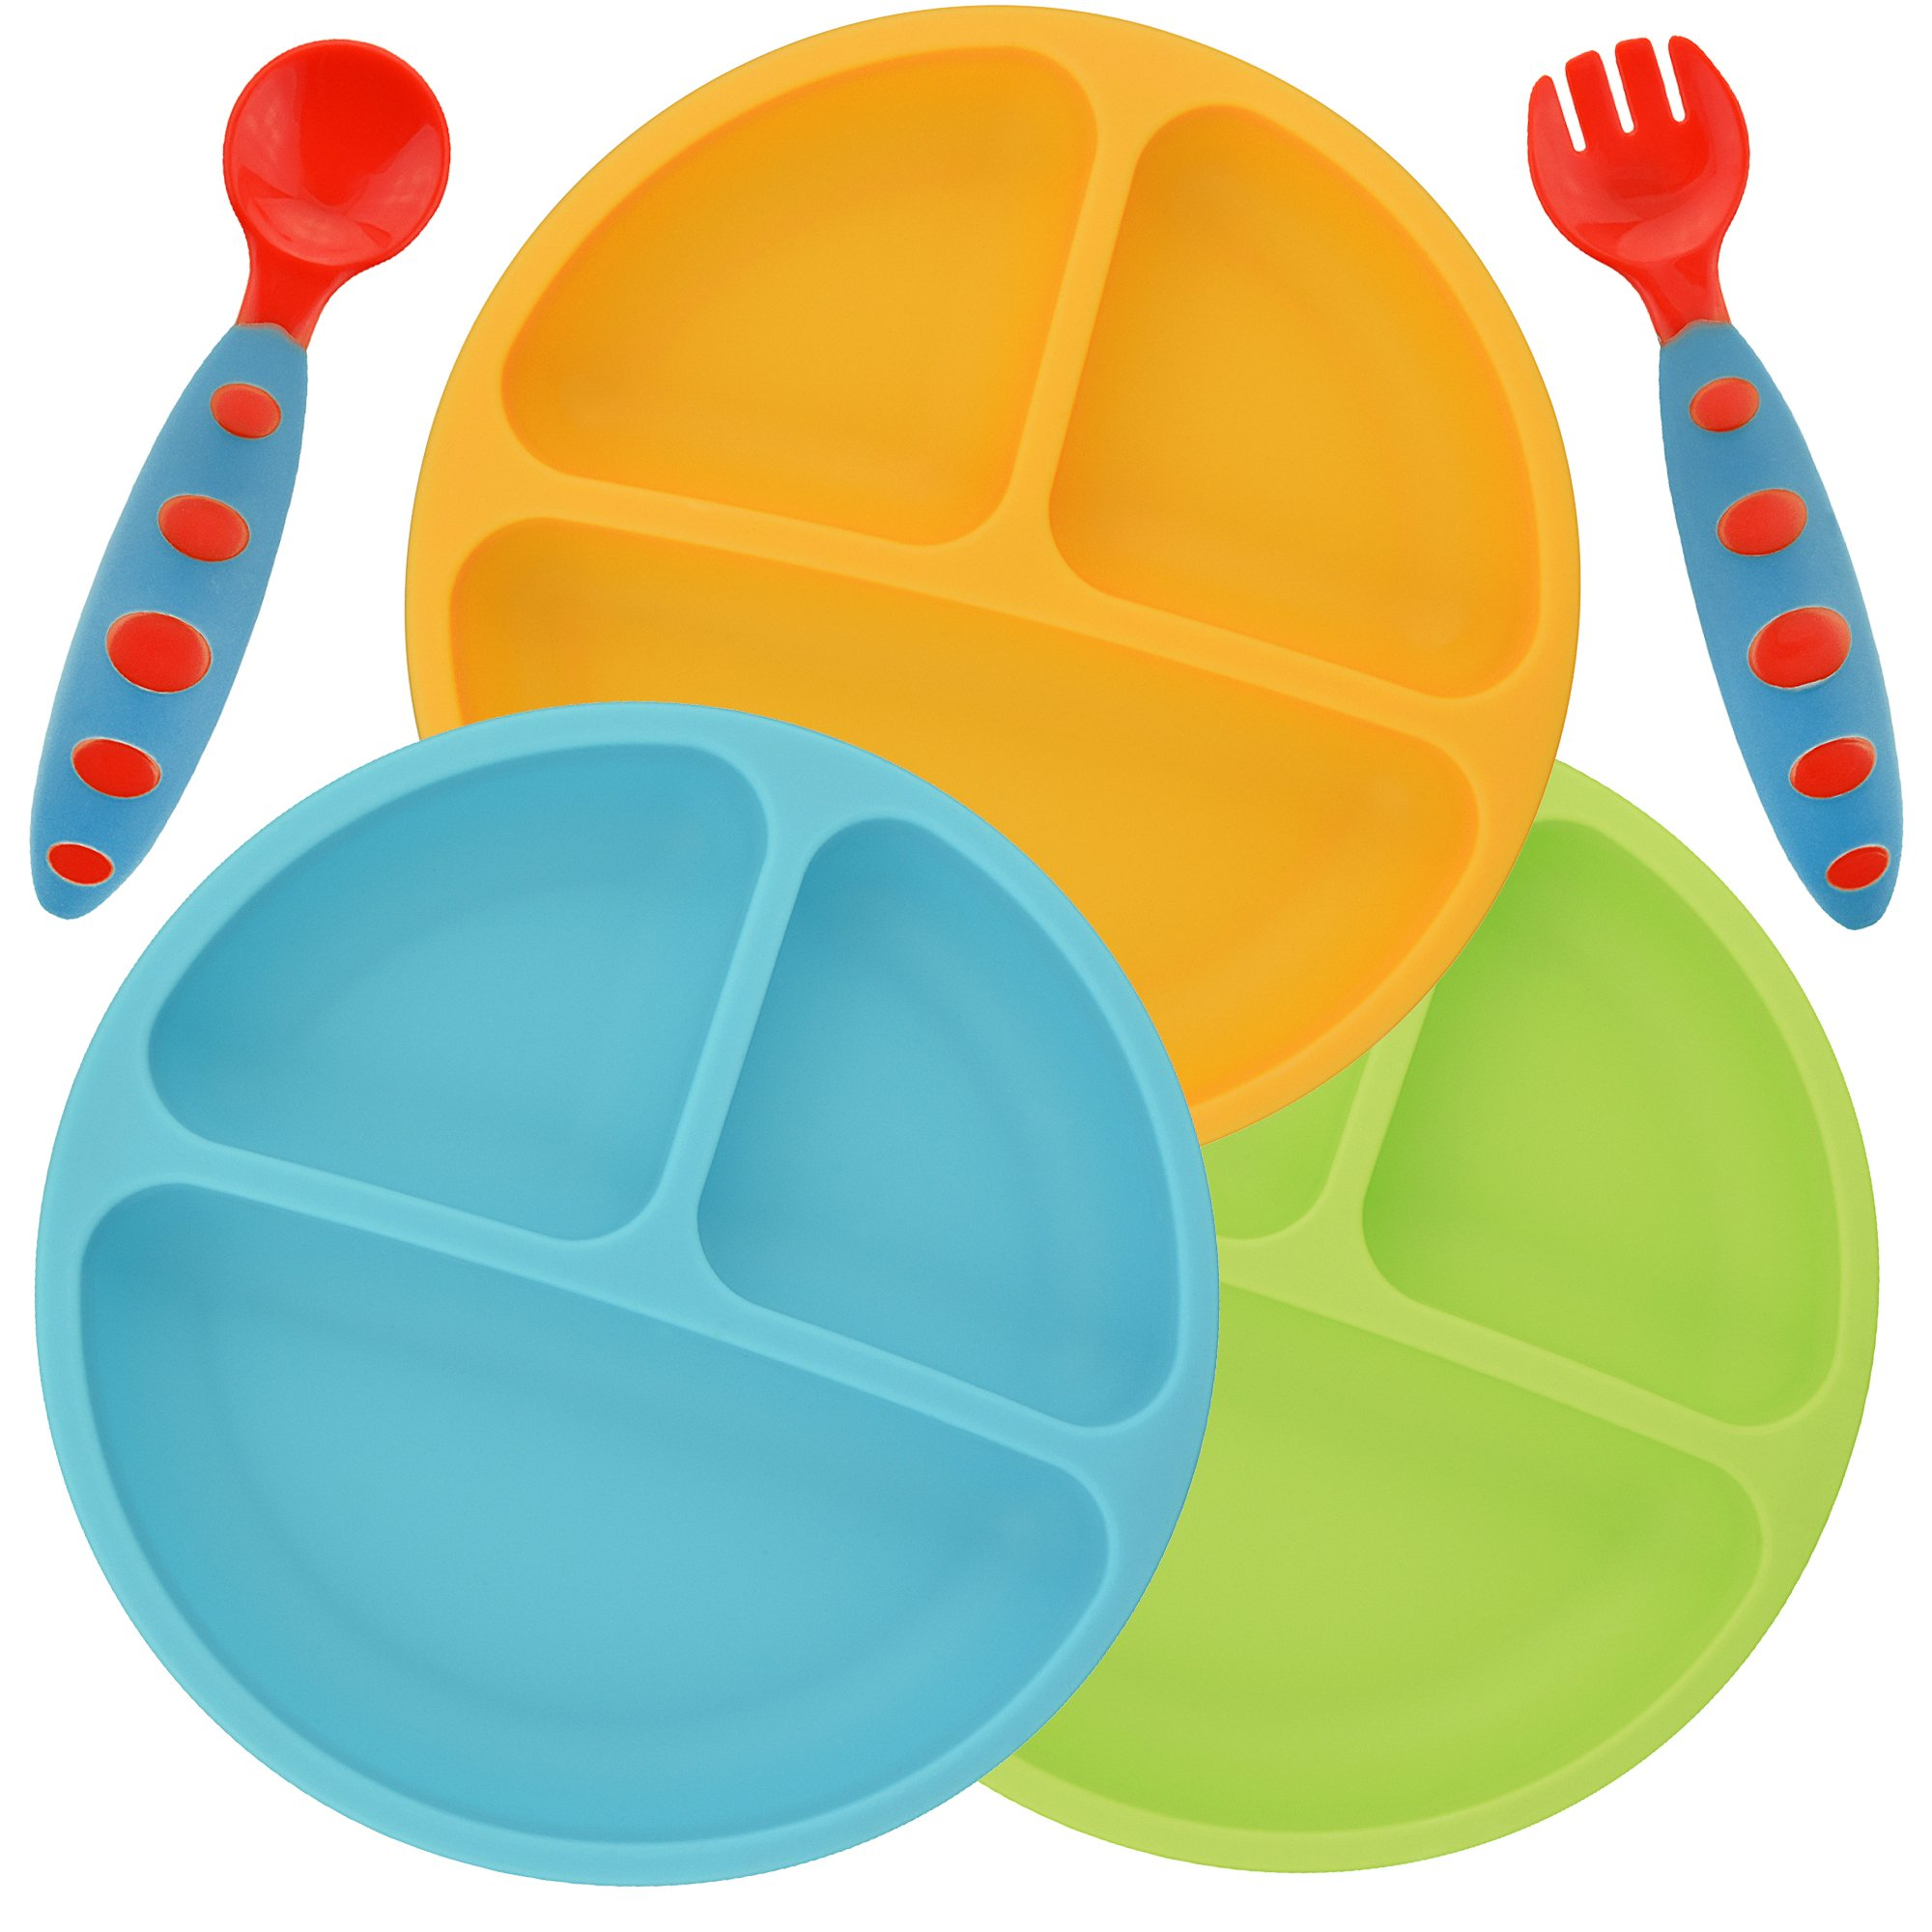 Divided Silicone Baby and Toddler Plate - 3 Pack - Non-Slip - Dishwasher and Microwave Safe - FDA/LFGB Certified Silicone Blue Green Yellow